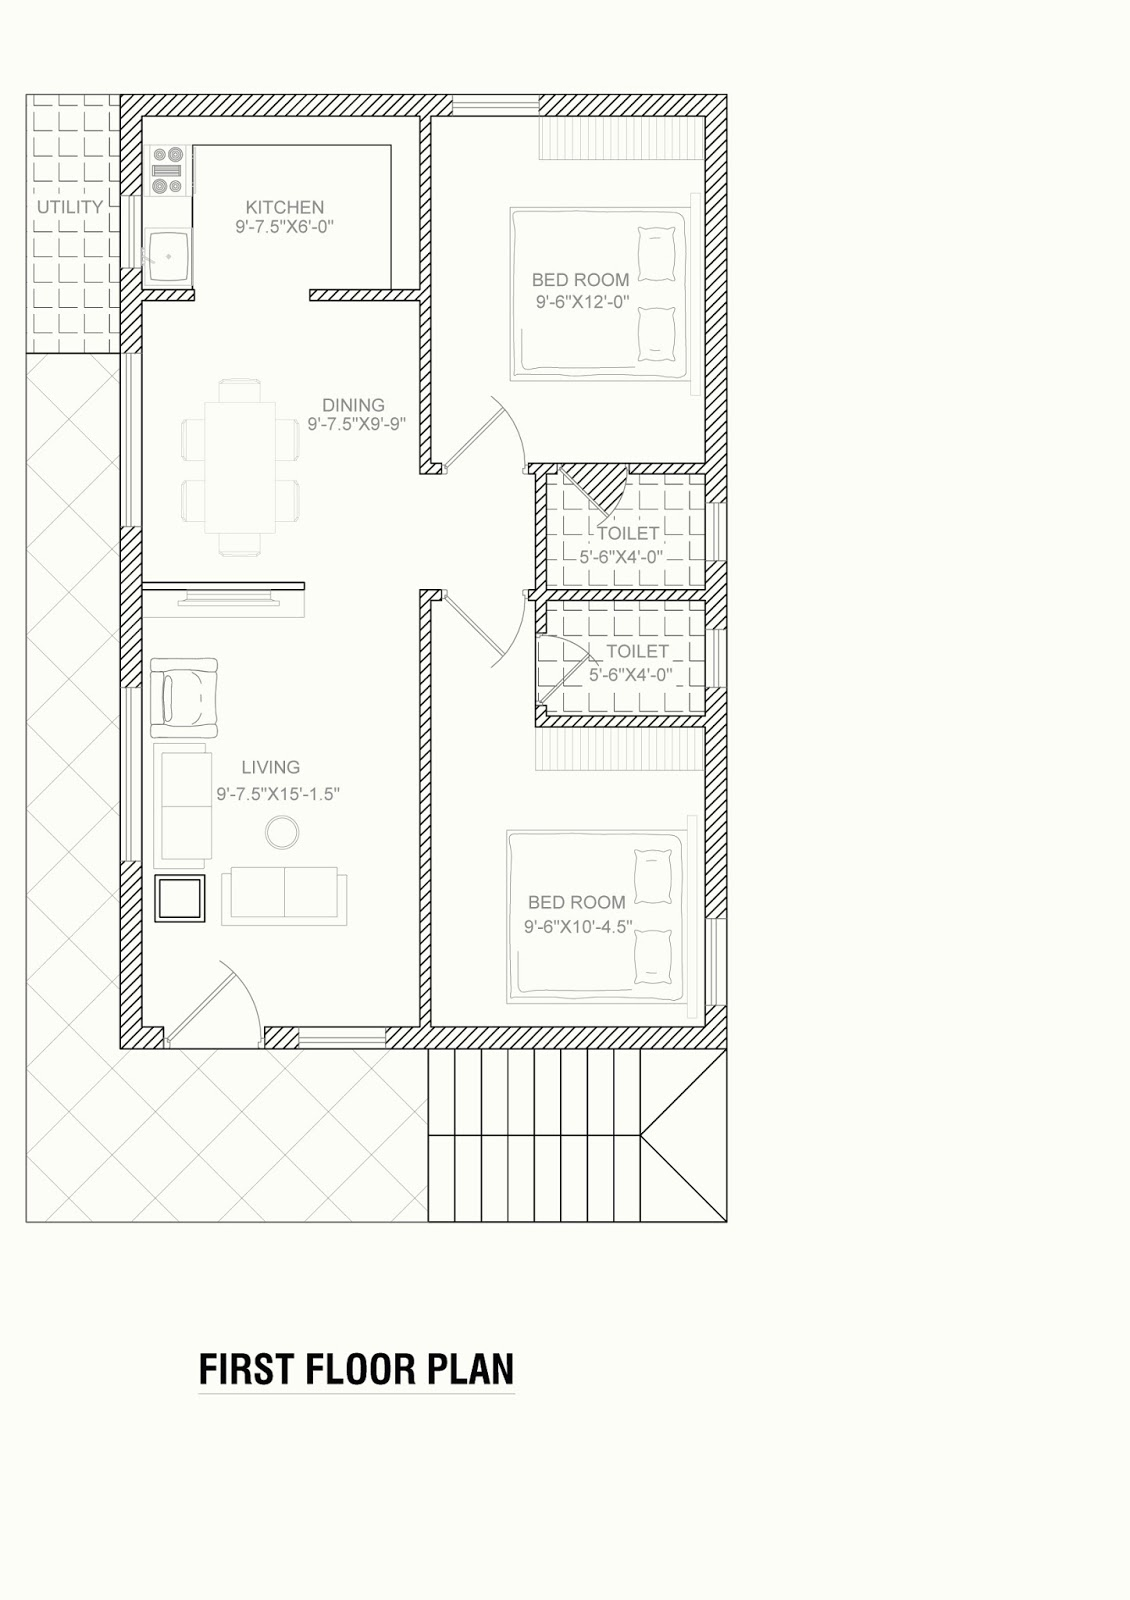 North Face Plan For House 30x40 Feet Area Home Designs Interior Decoration Ideas